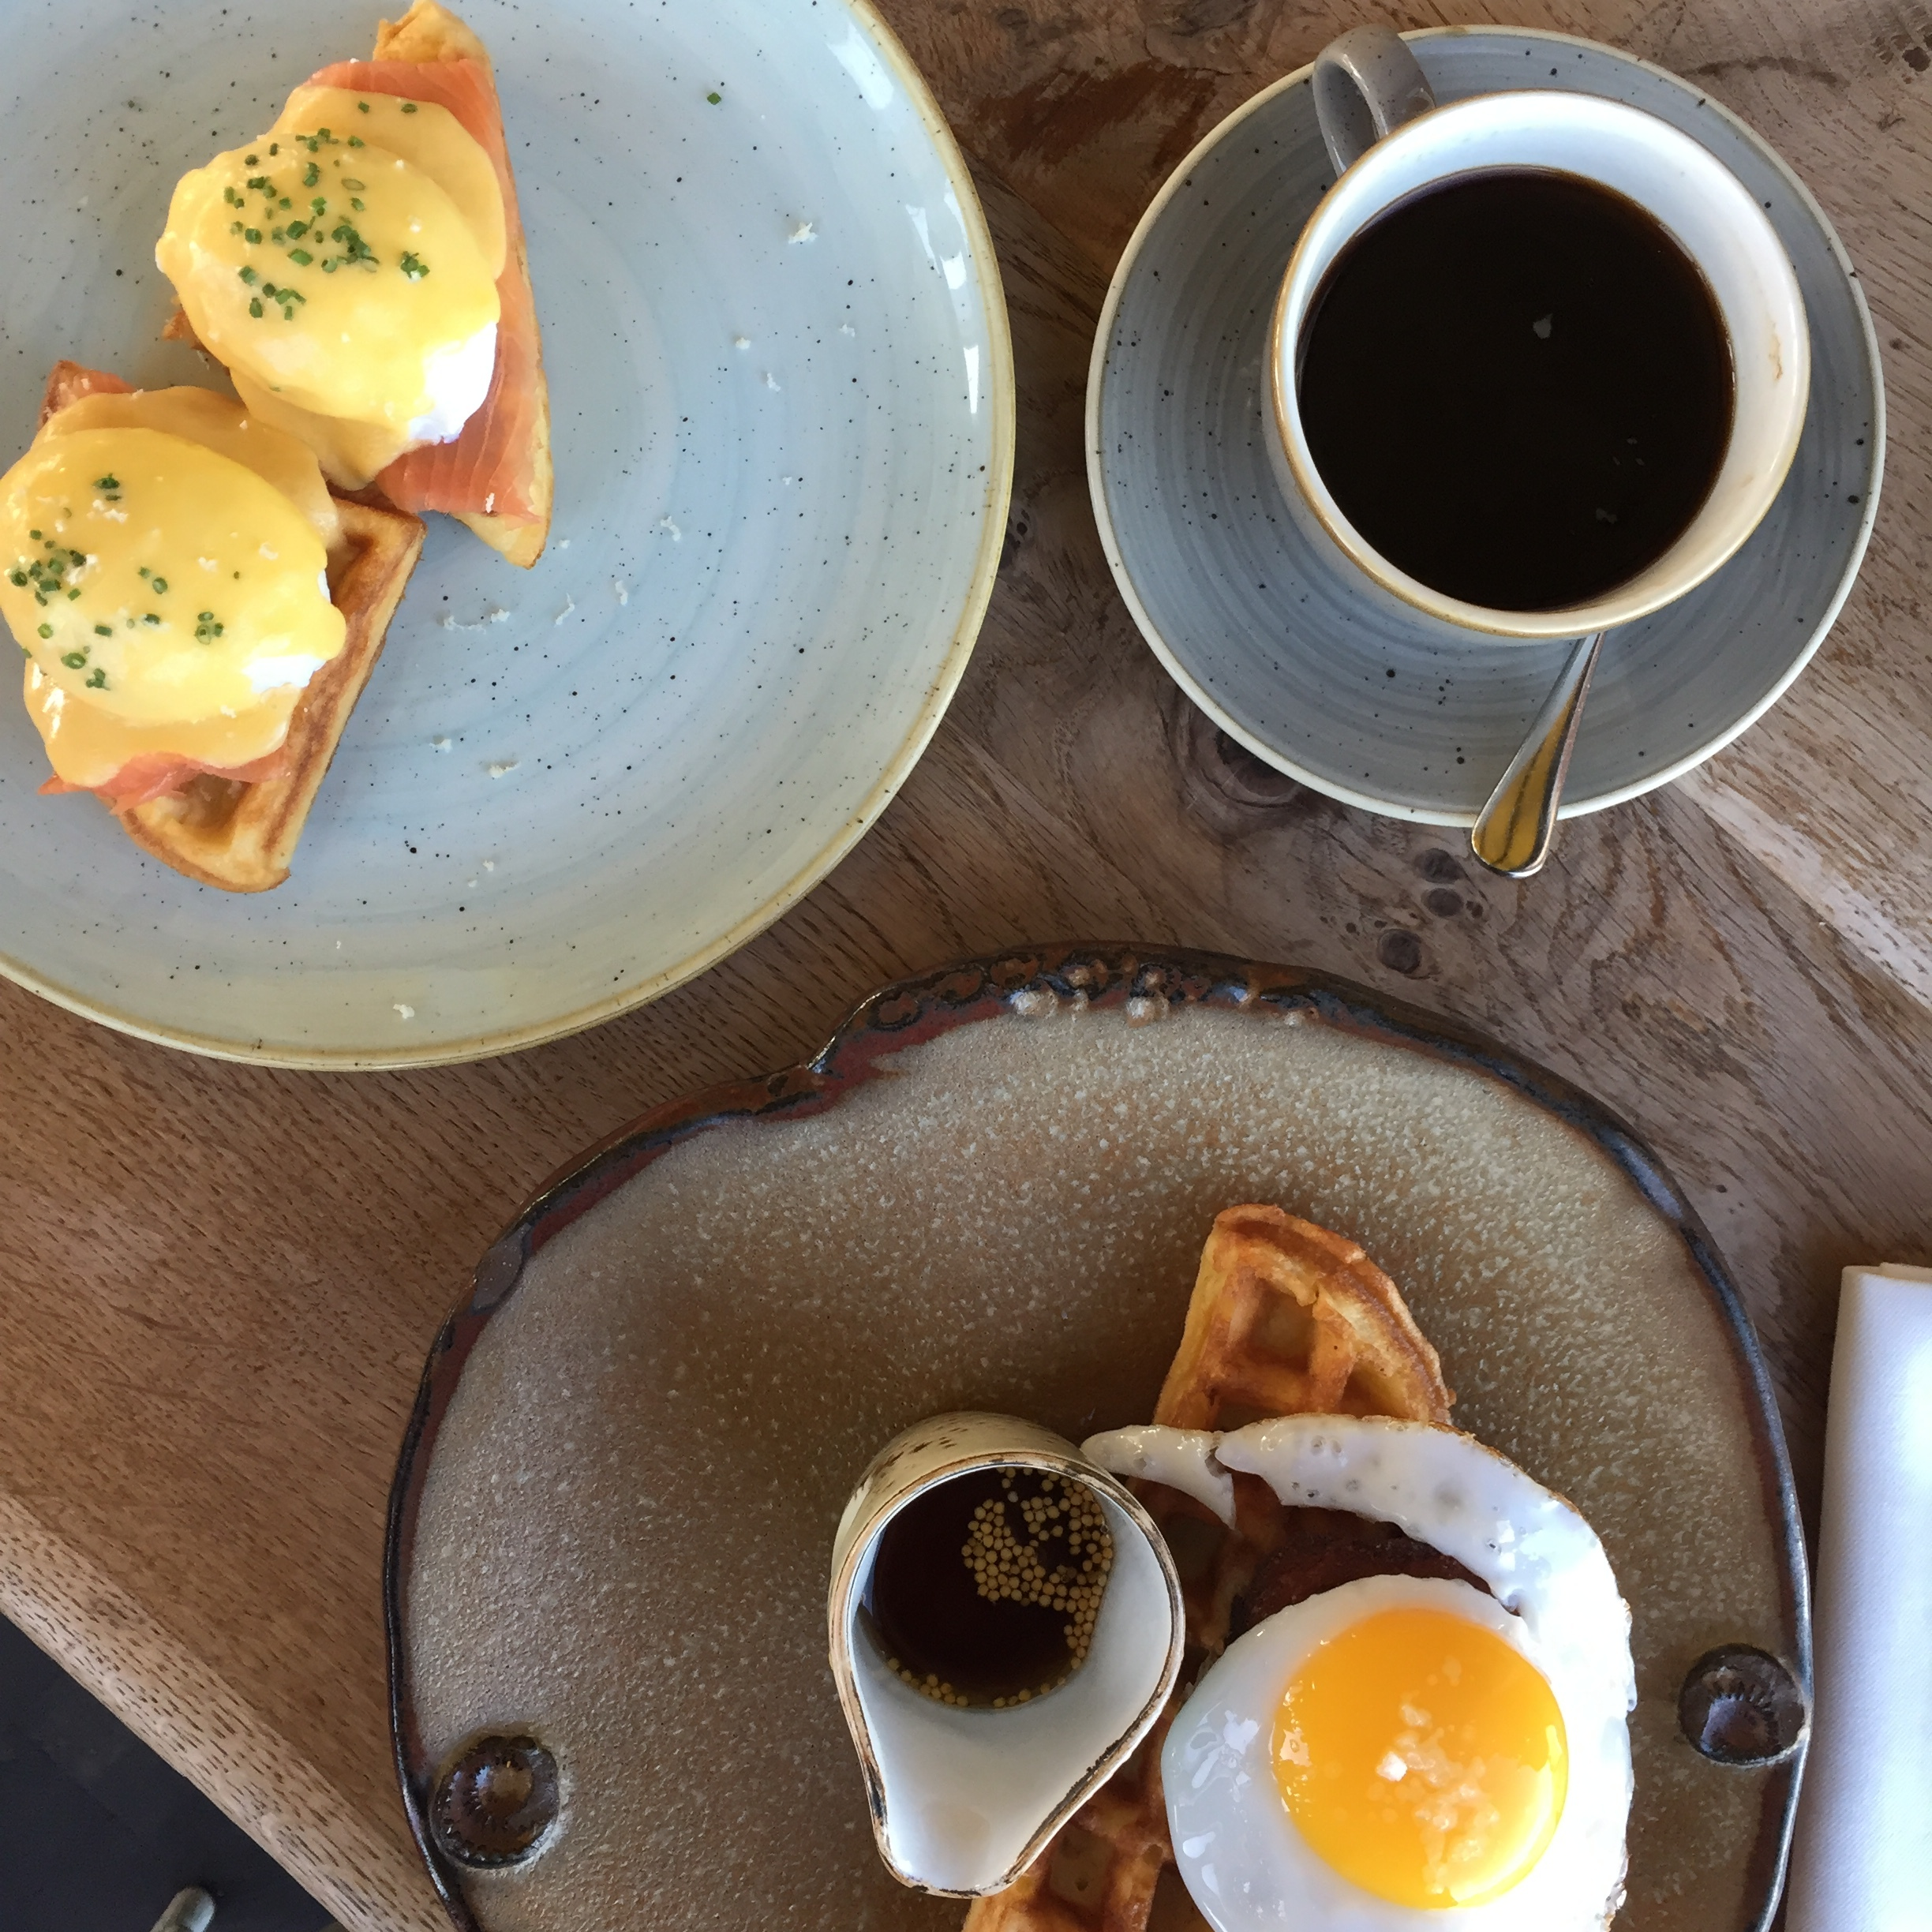 Brunch @Duck and Waffle